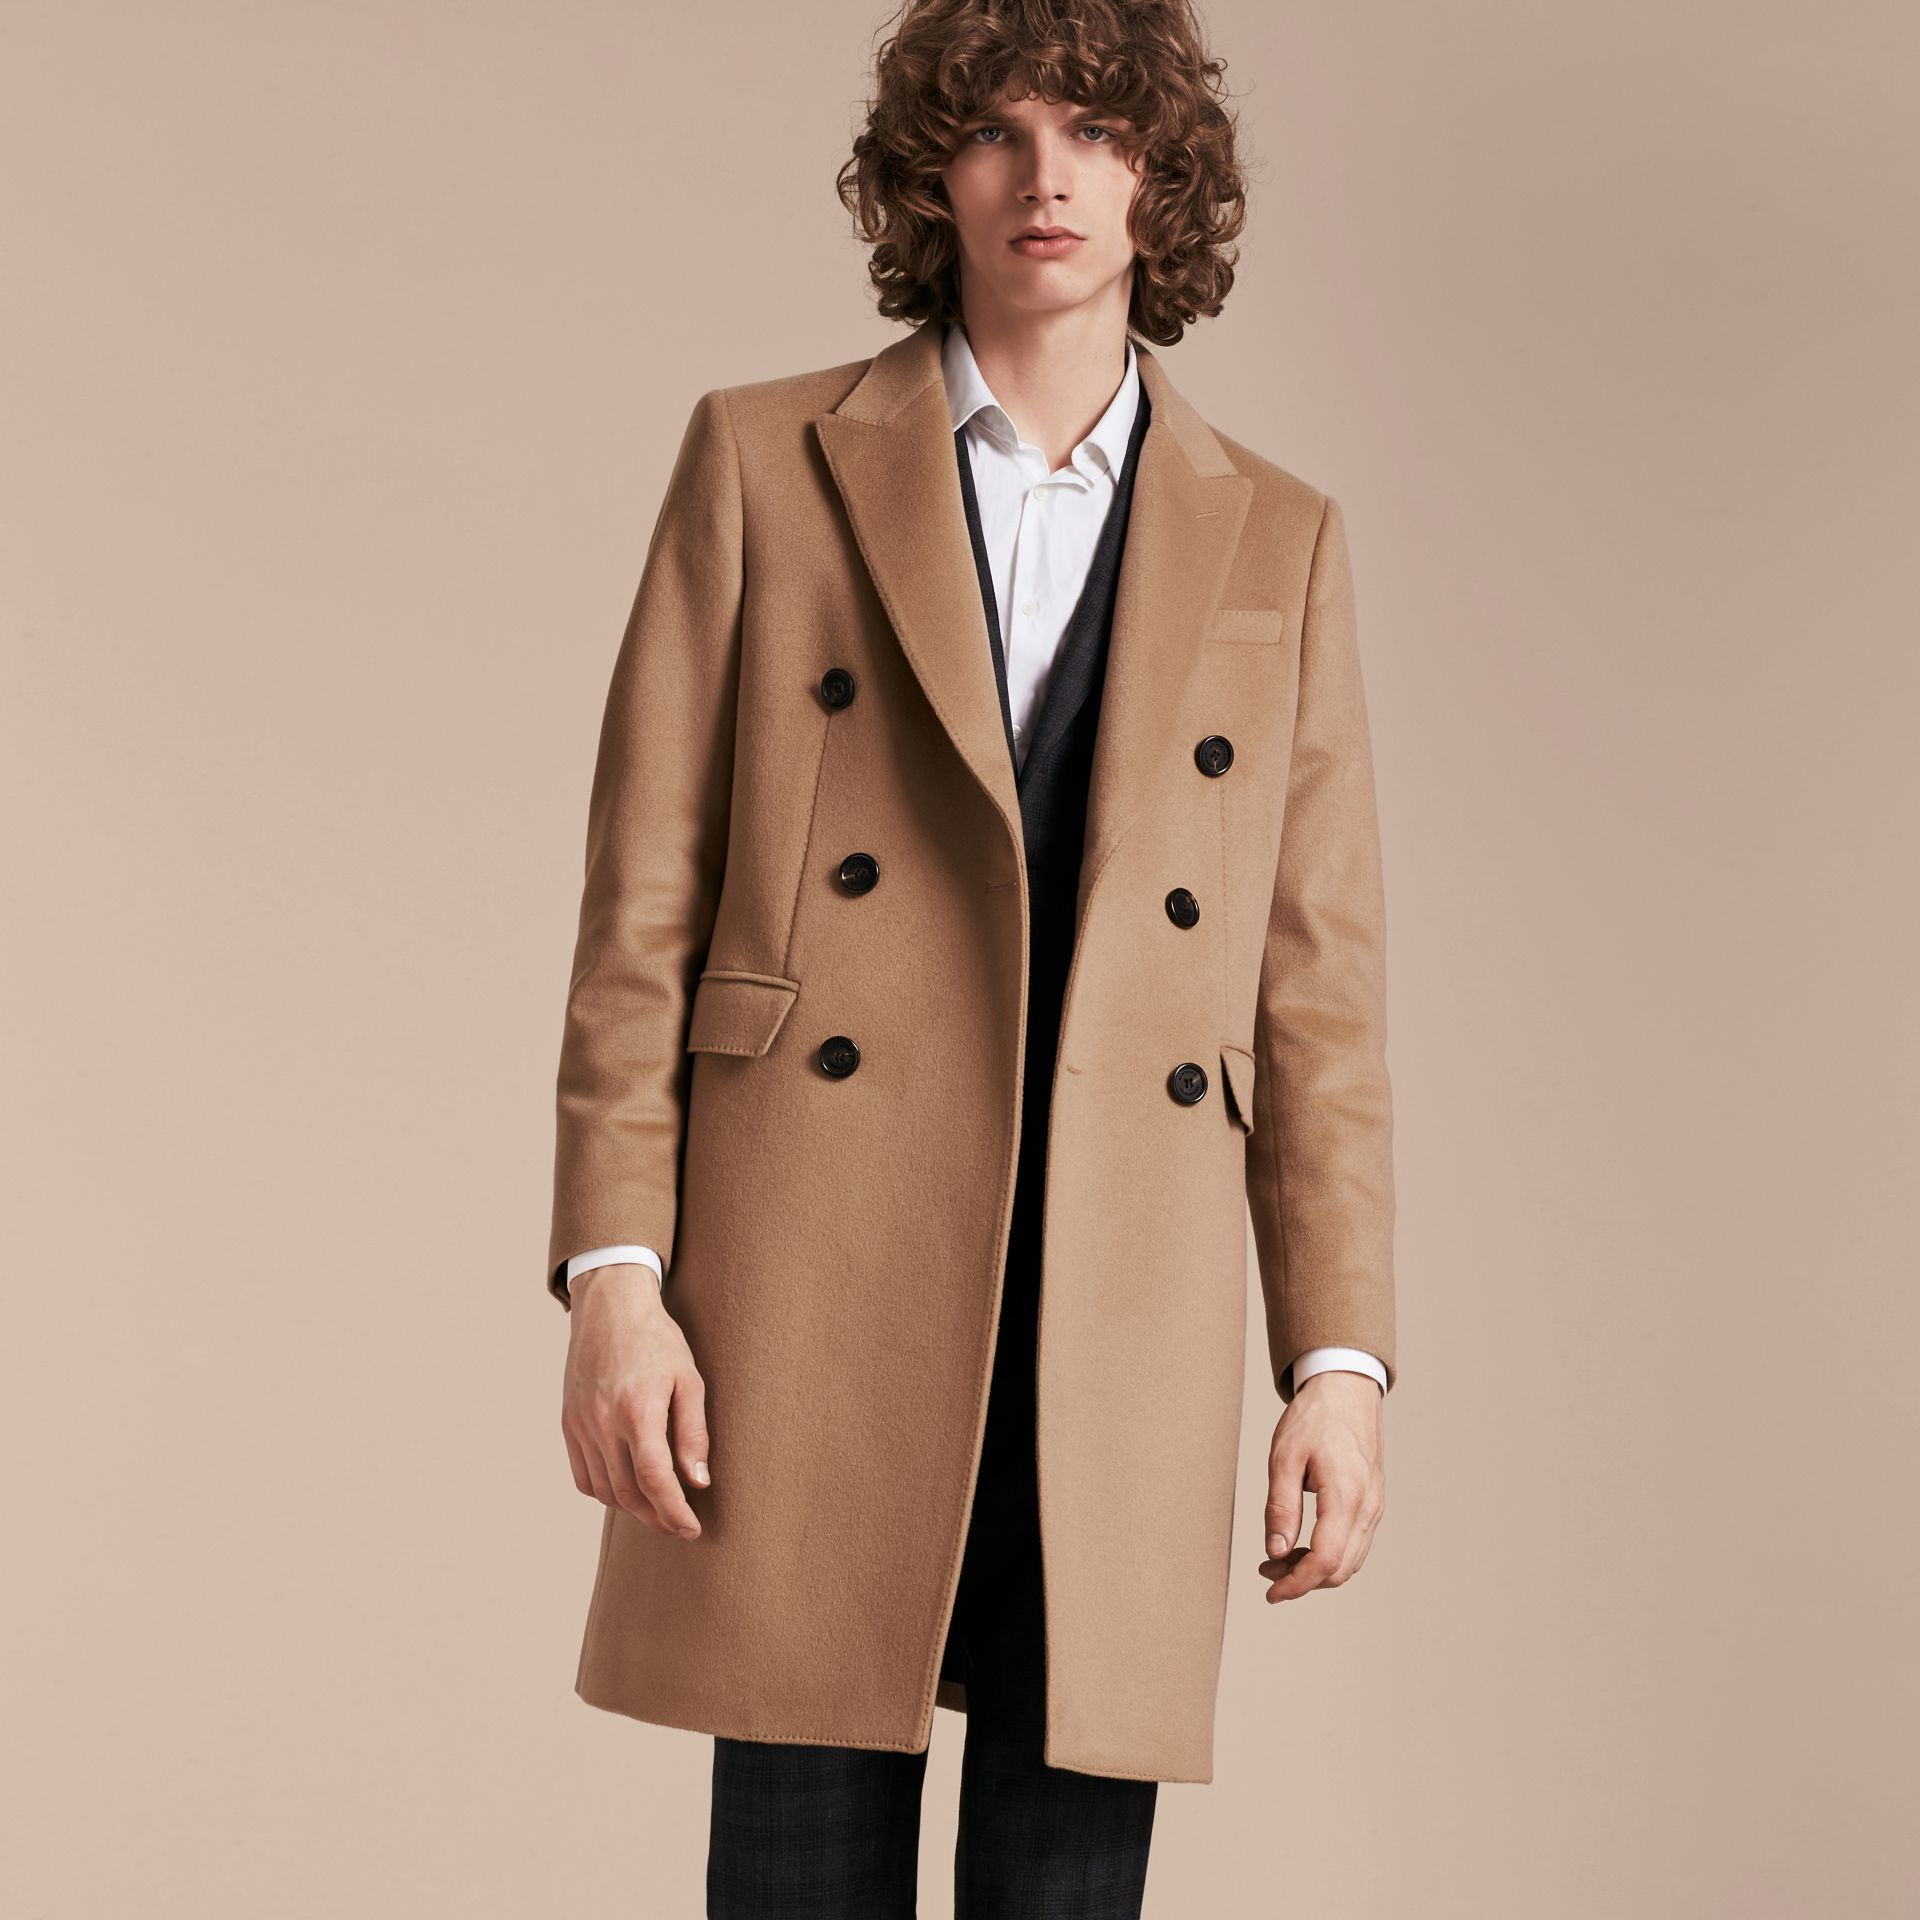 Camel Double-breasted Tailored Wool Cashmere Coat - gallery image 8